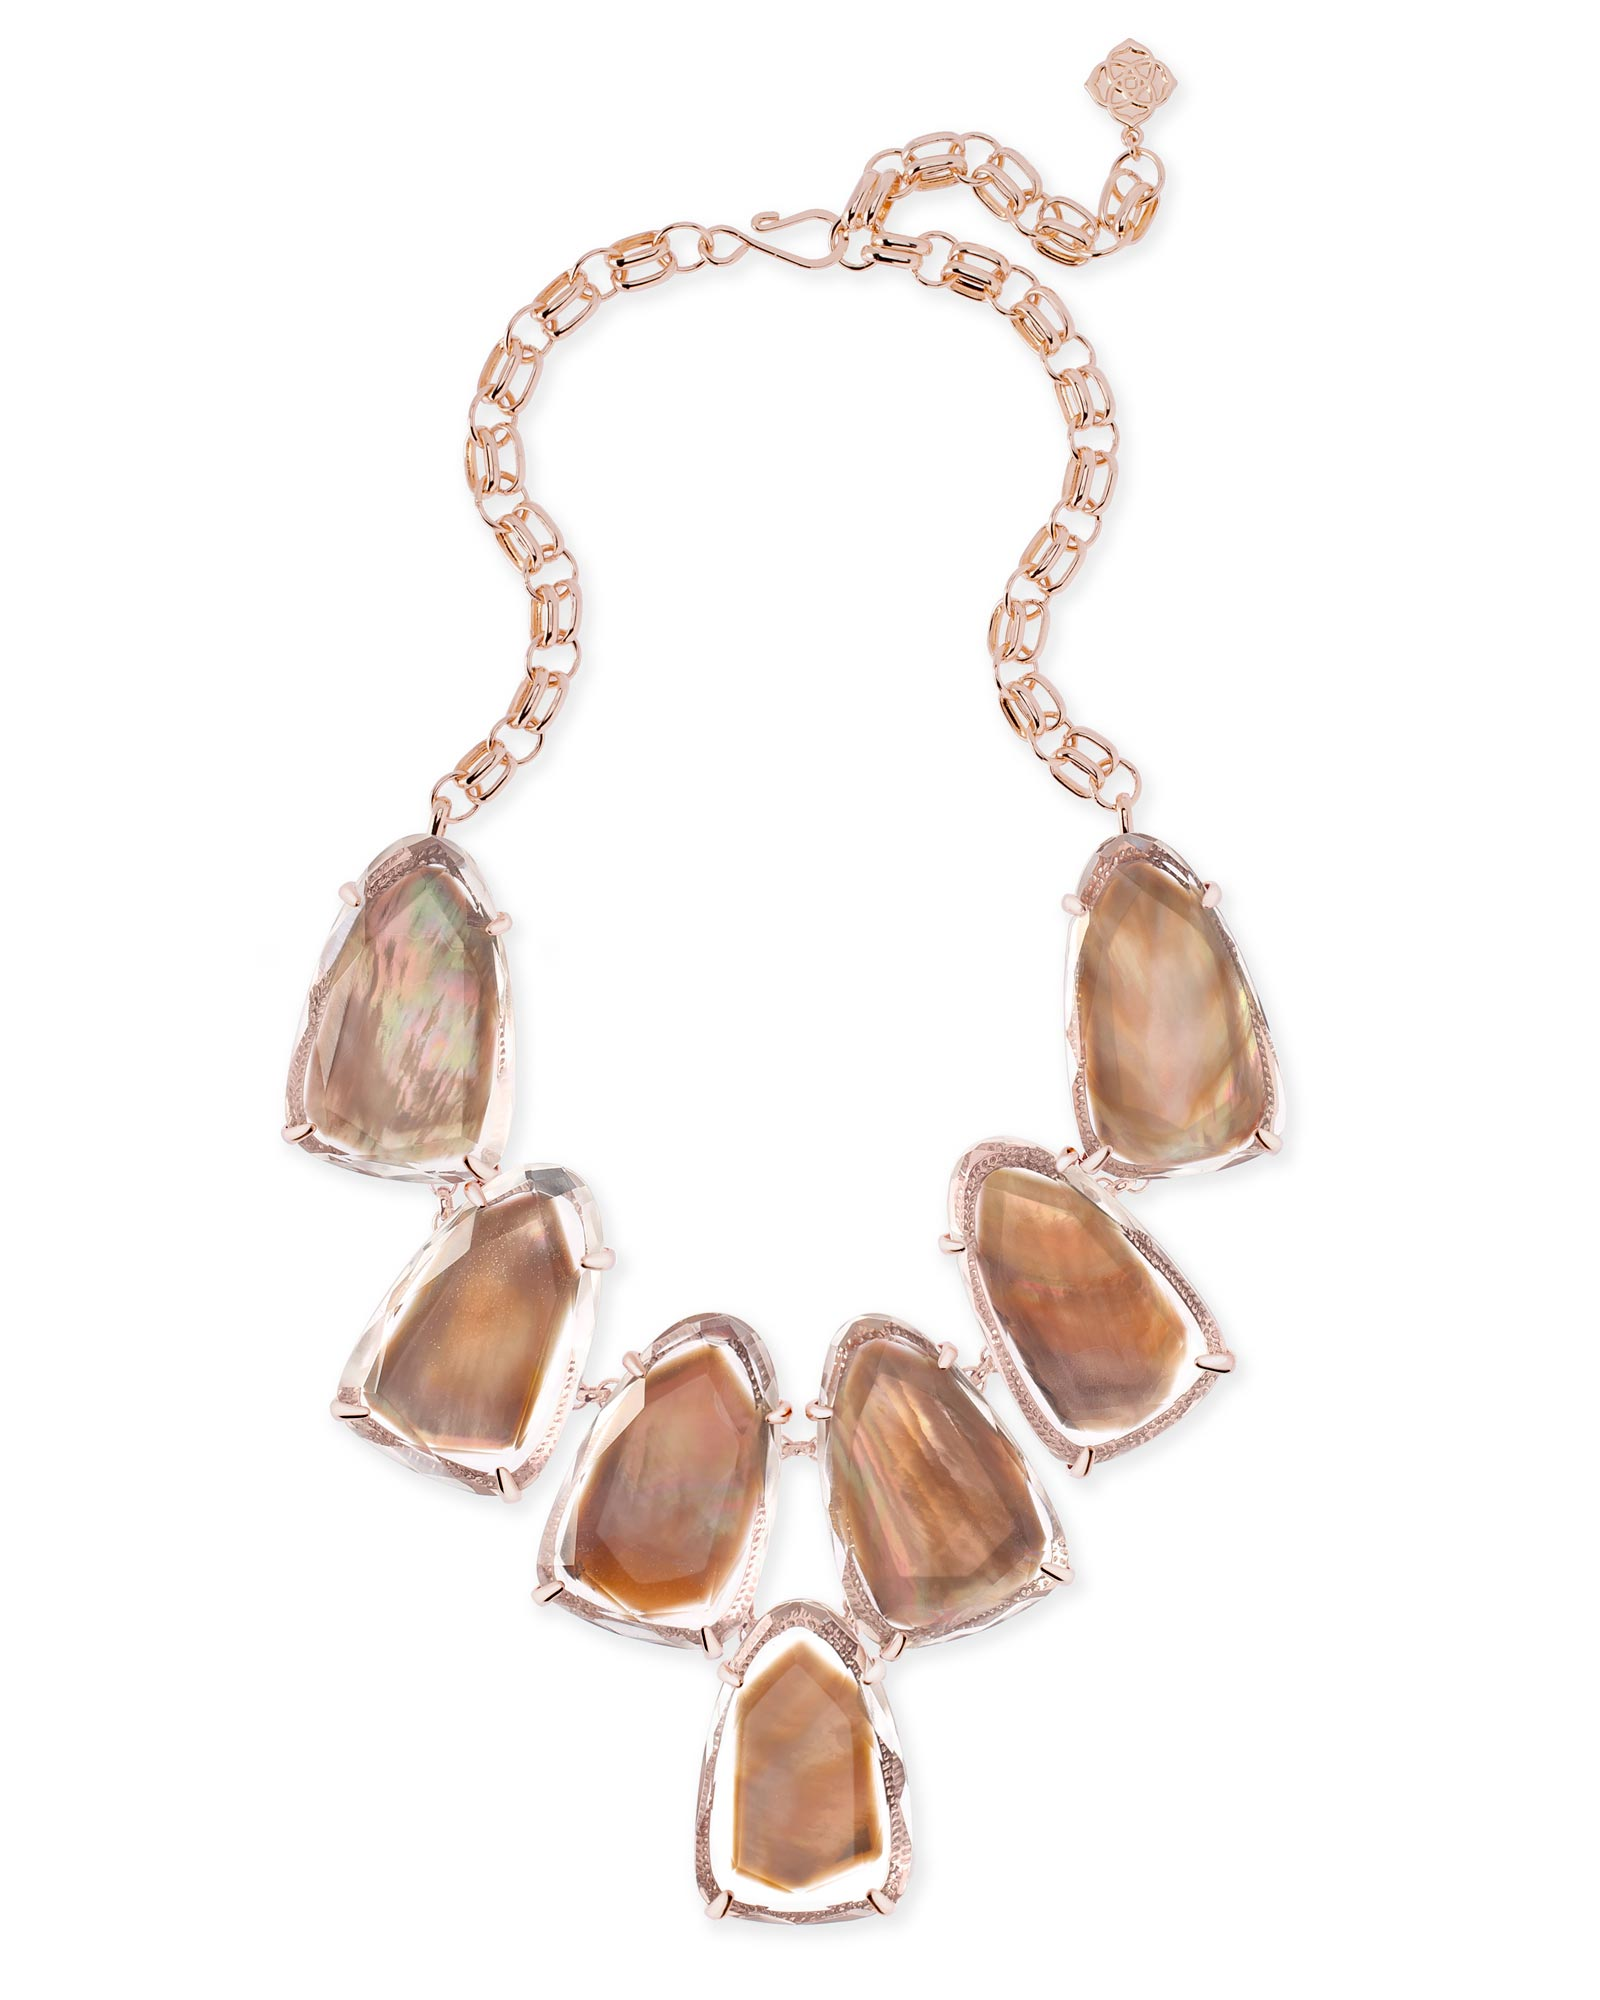 Harlow Statement Necklace in Rose Gold